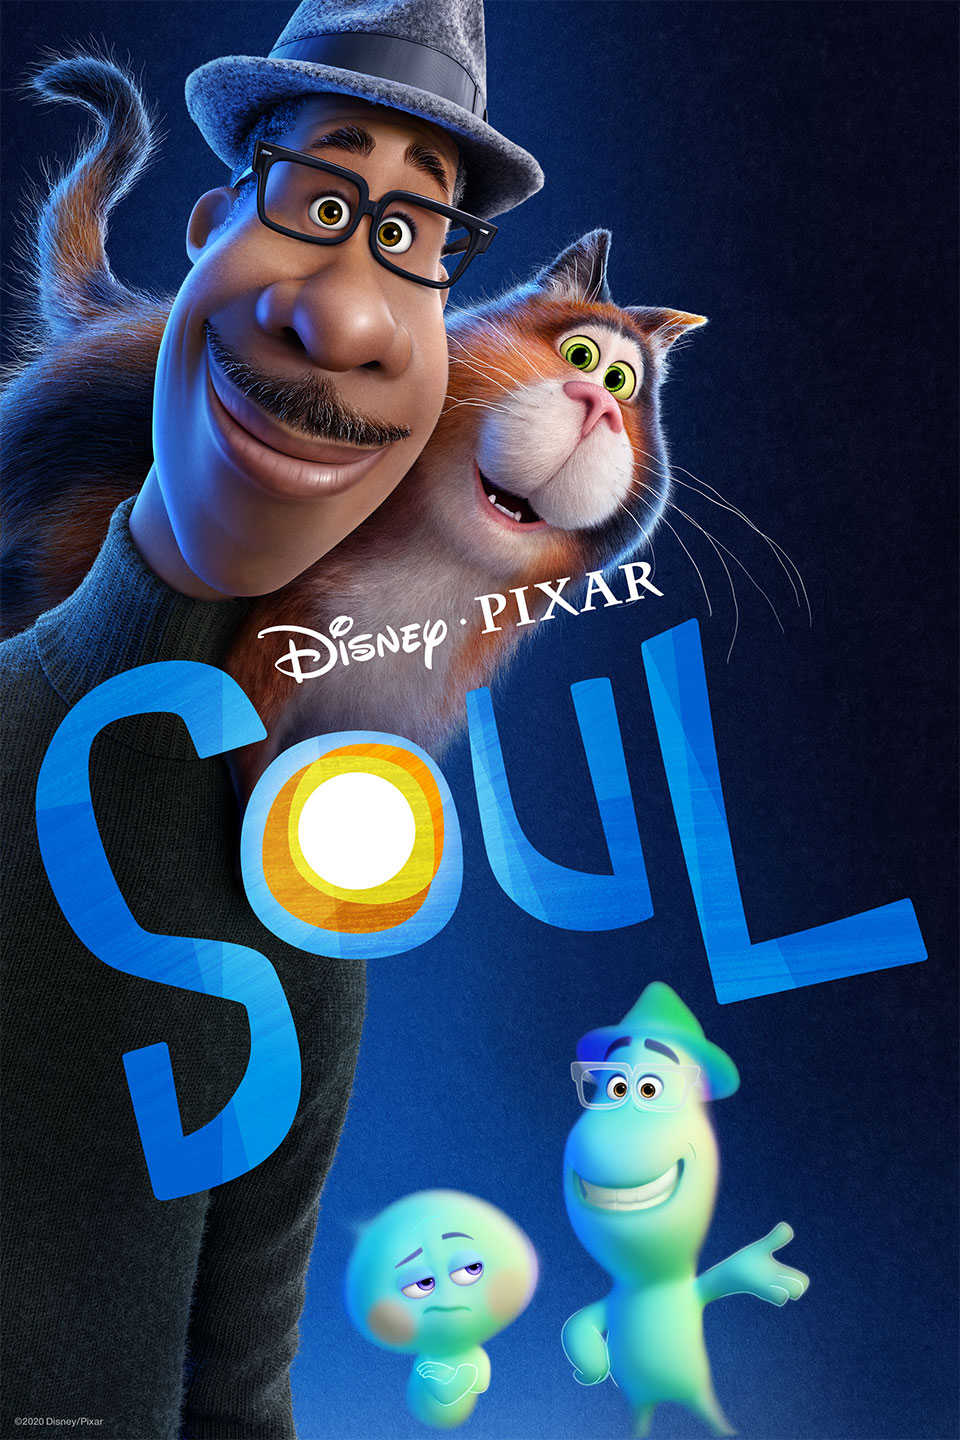 Whether you have already seen the movie or not, you will want to add the Disney Soul digital movie to your collection.